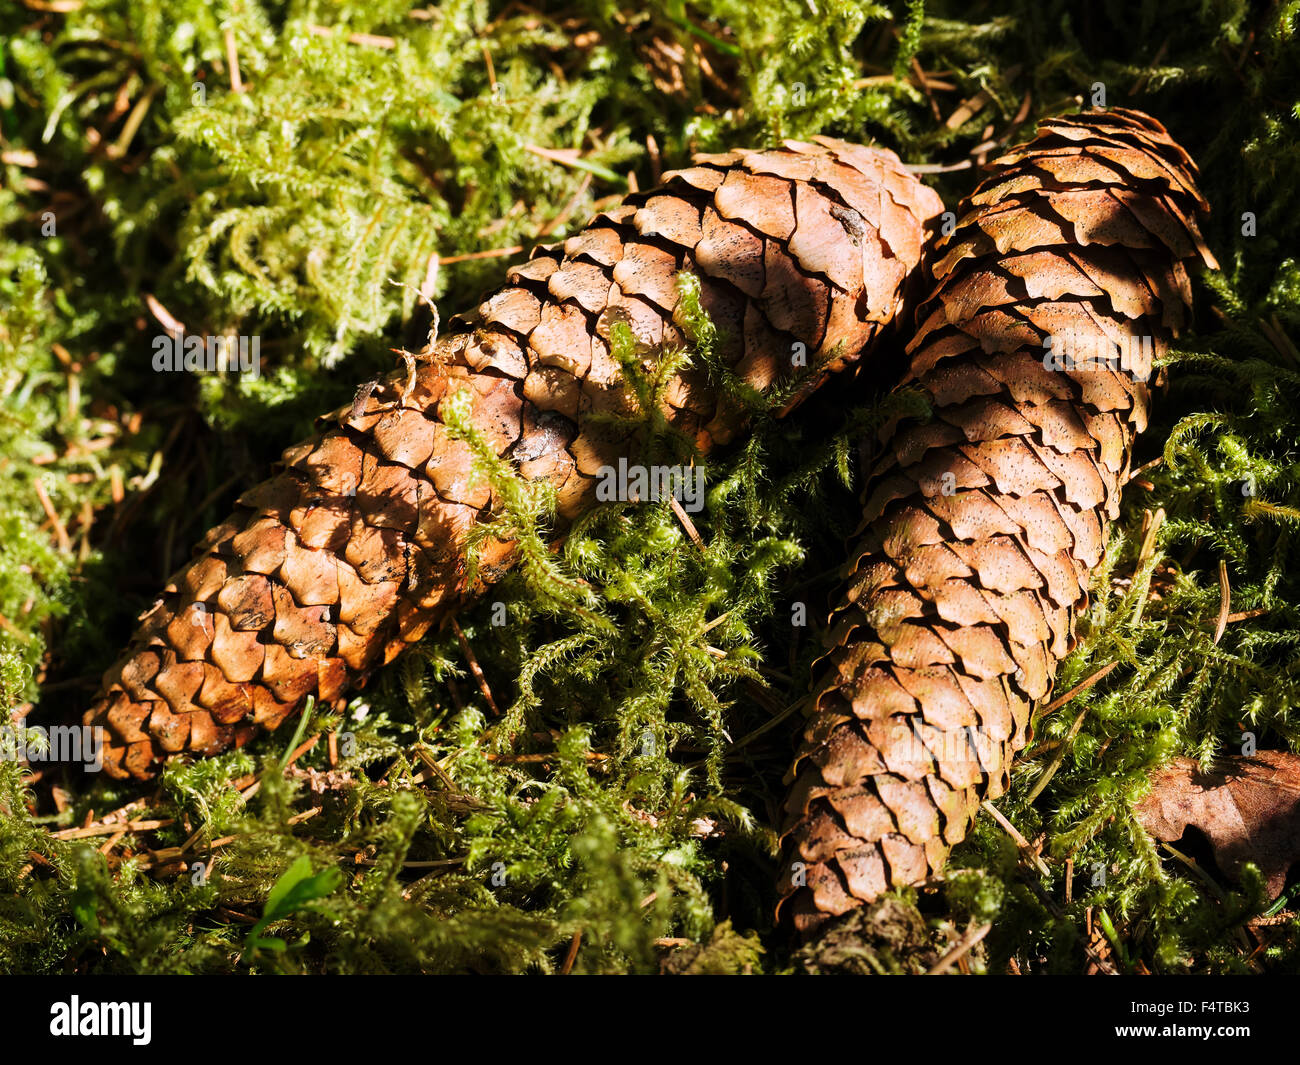 Fir cones in the moss - Stock Image